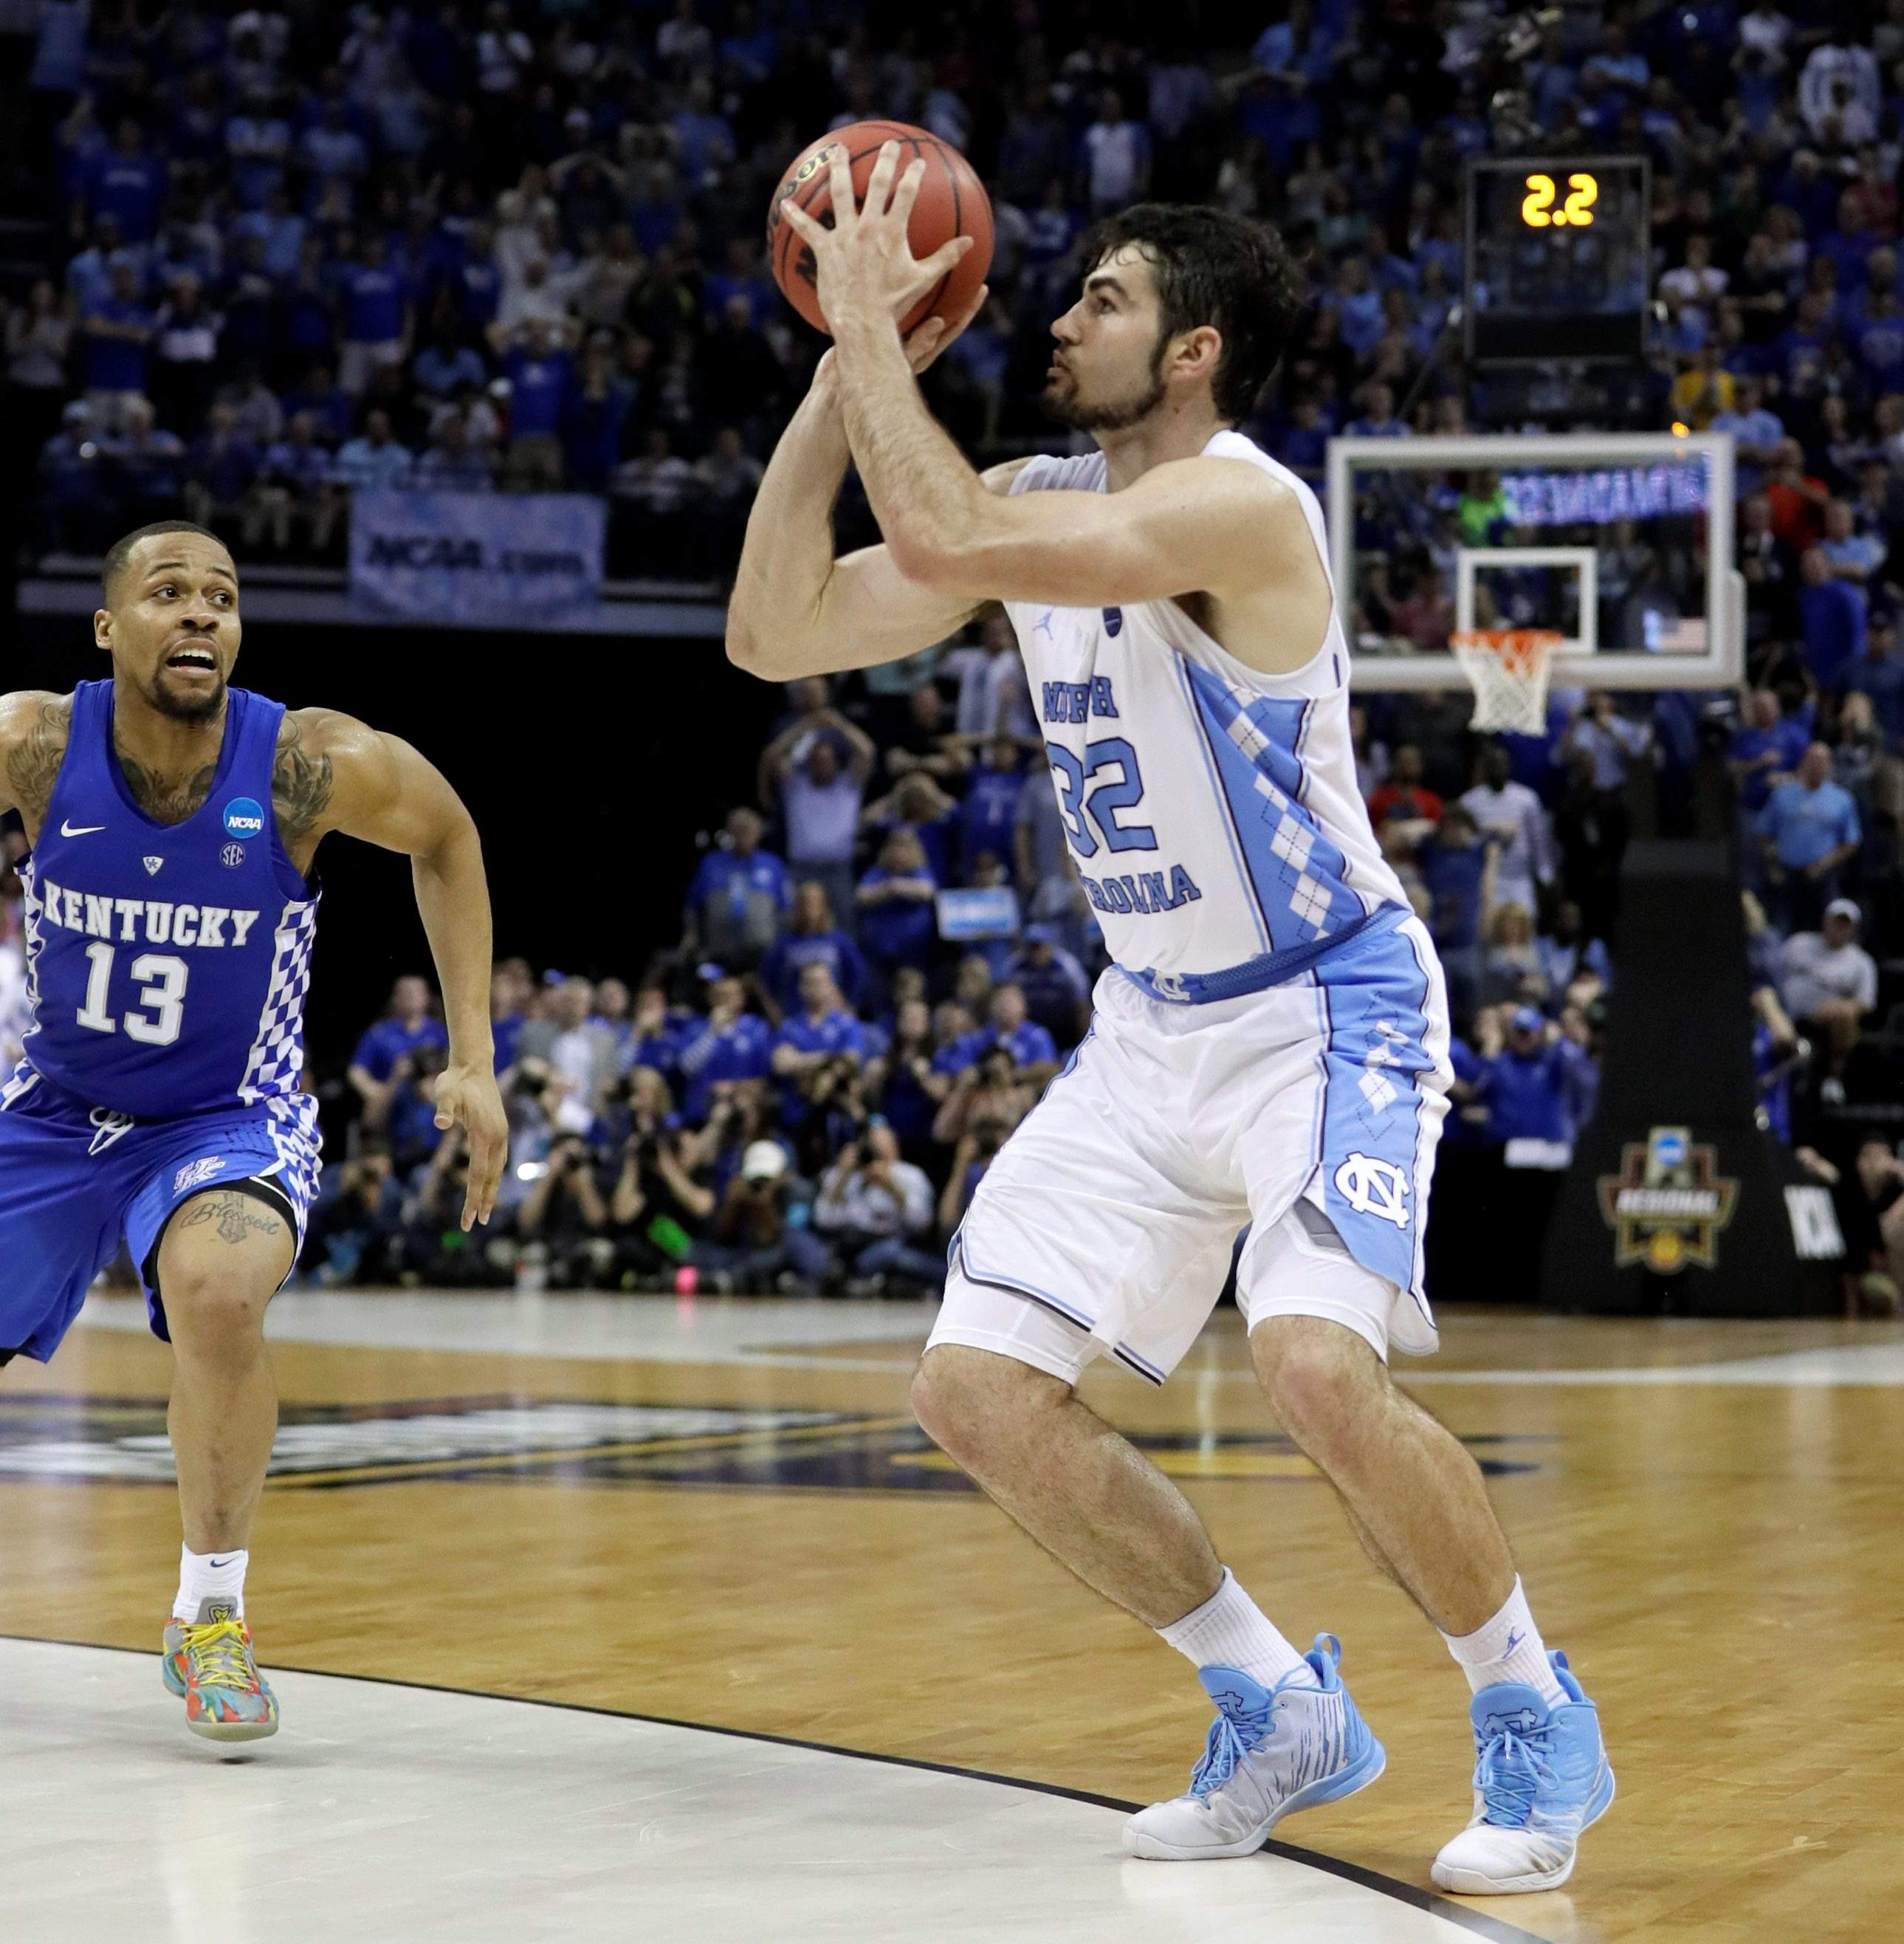 'Heartbroken' Kentucky stars won't get over this loss soon